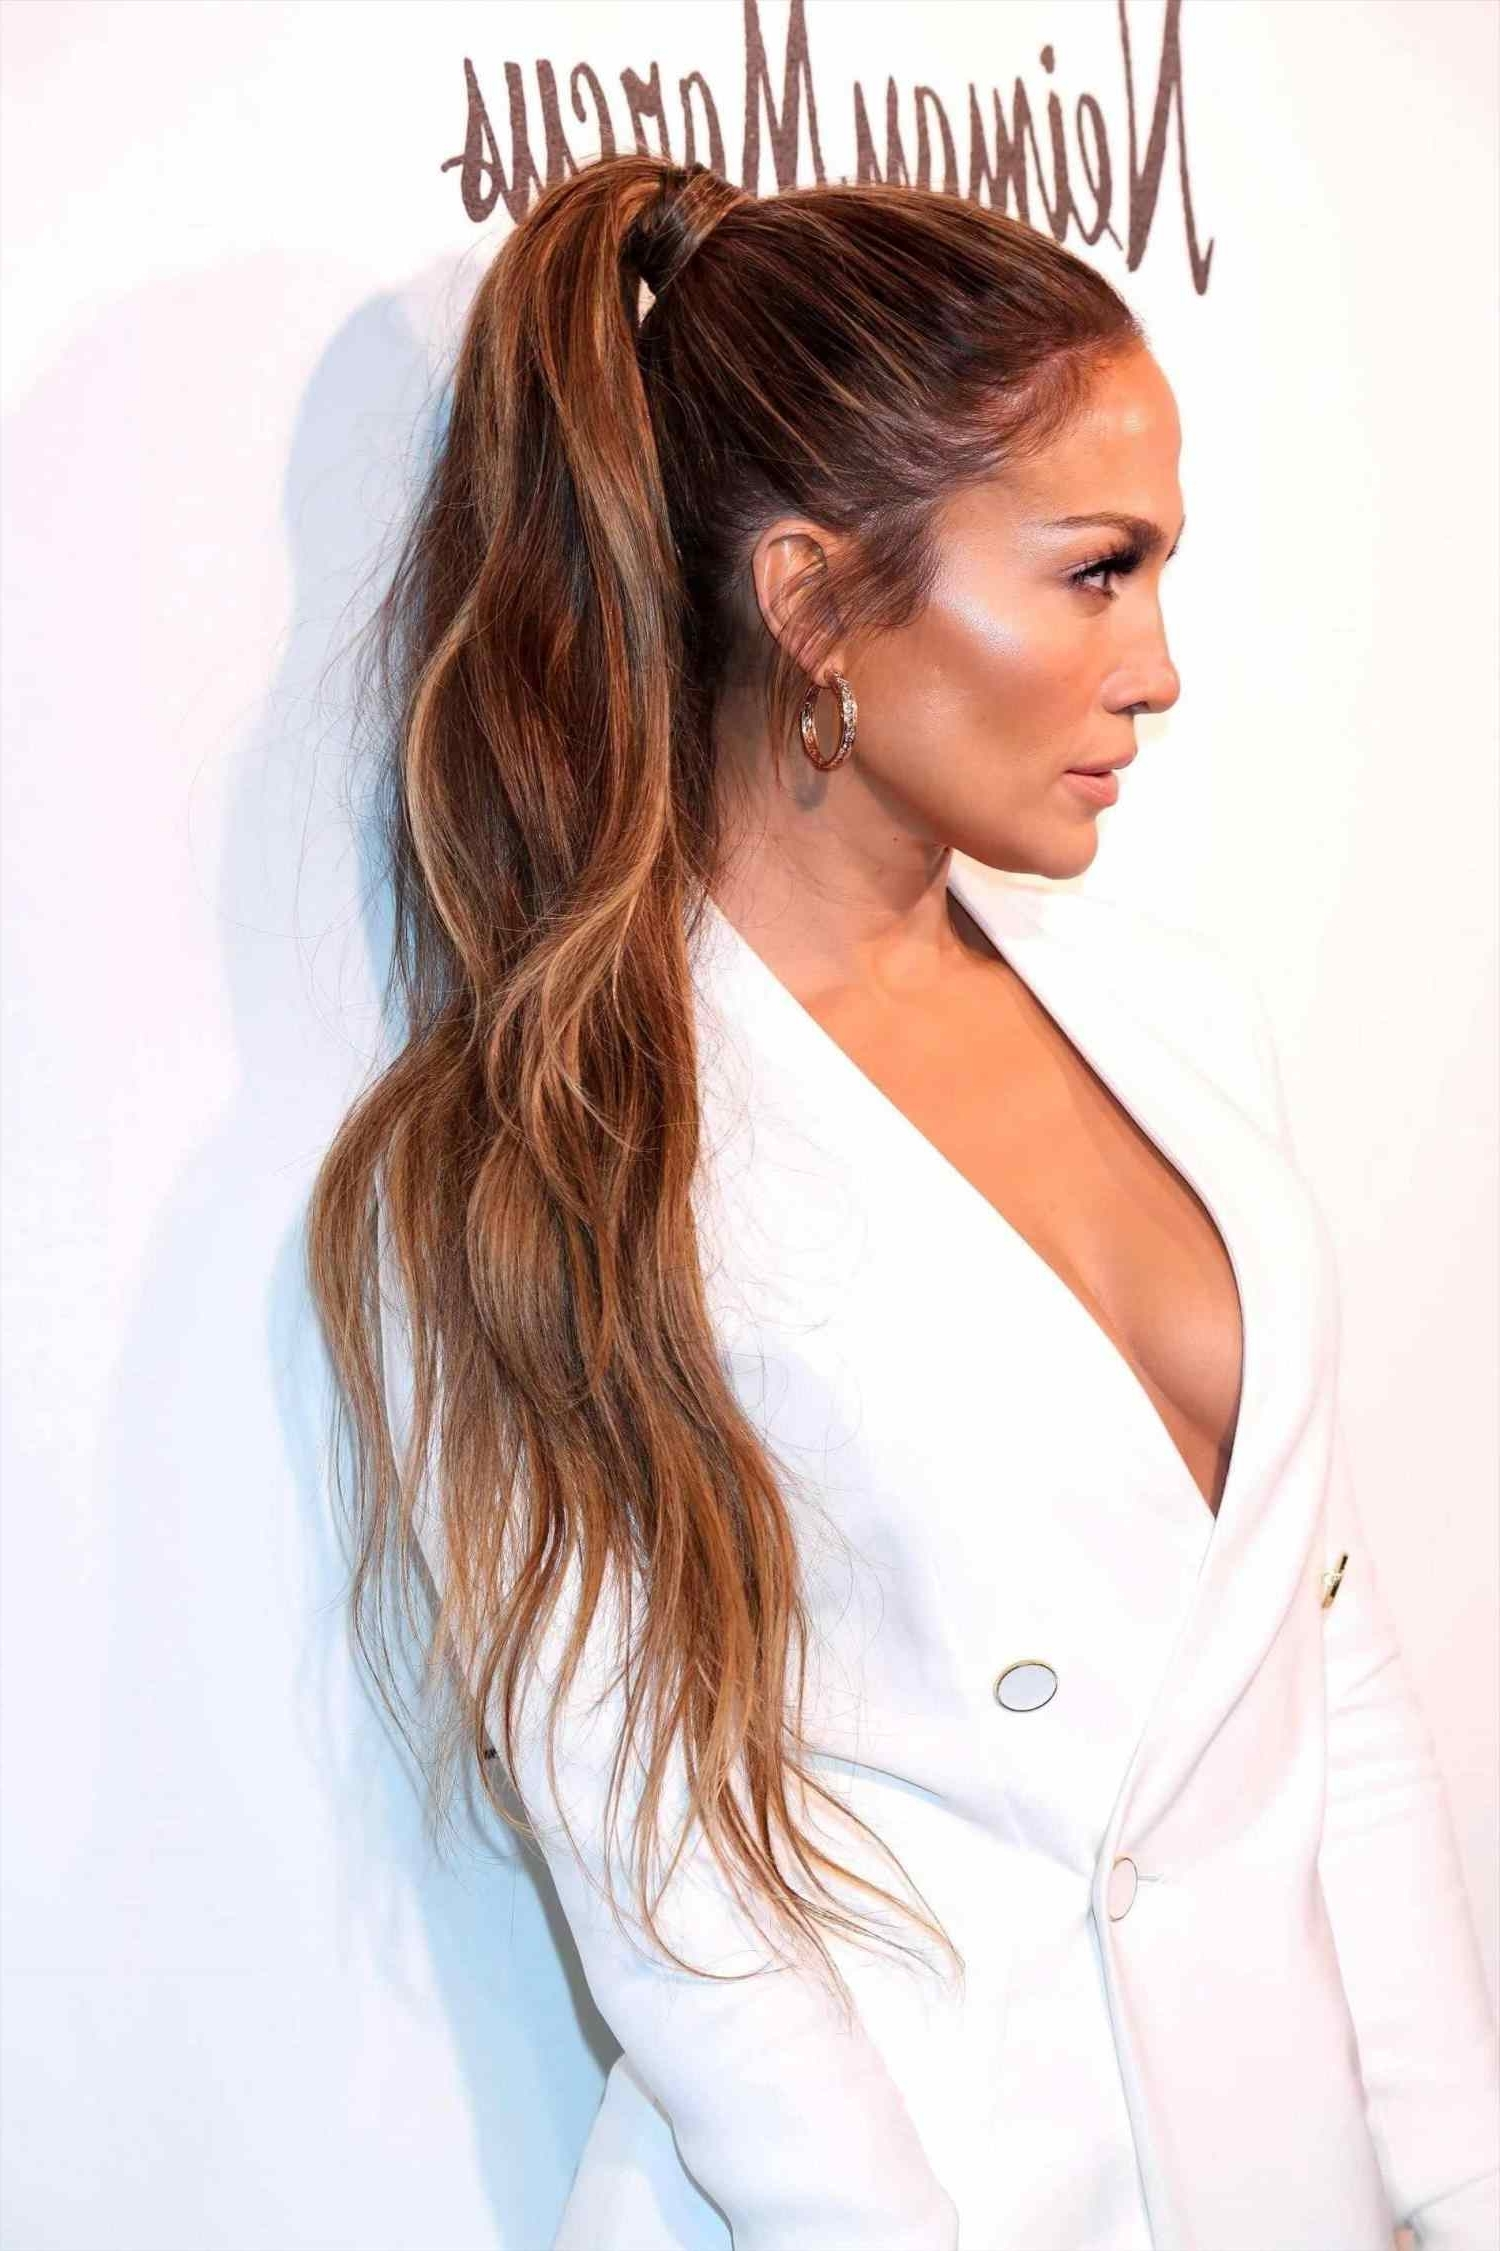 High Ponytail Hairstyles Tutorial A High Ponytail Long Hairstyles For Preferred High Voluminous Ponytail Hairstyles (View 11 of 20)